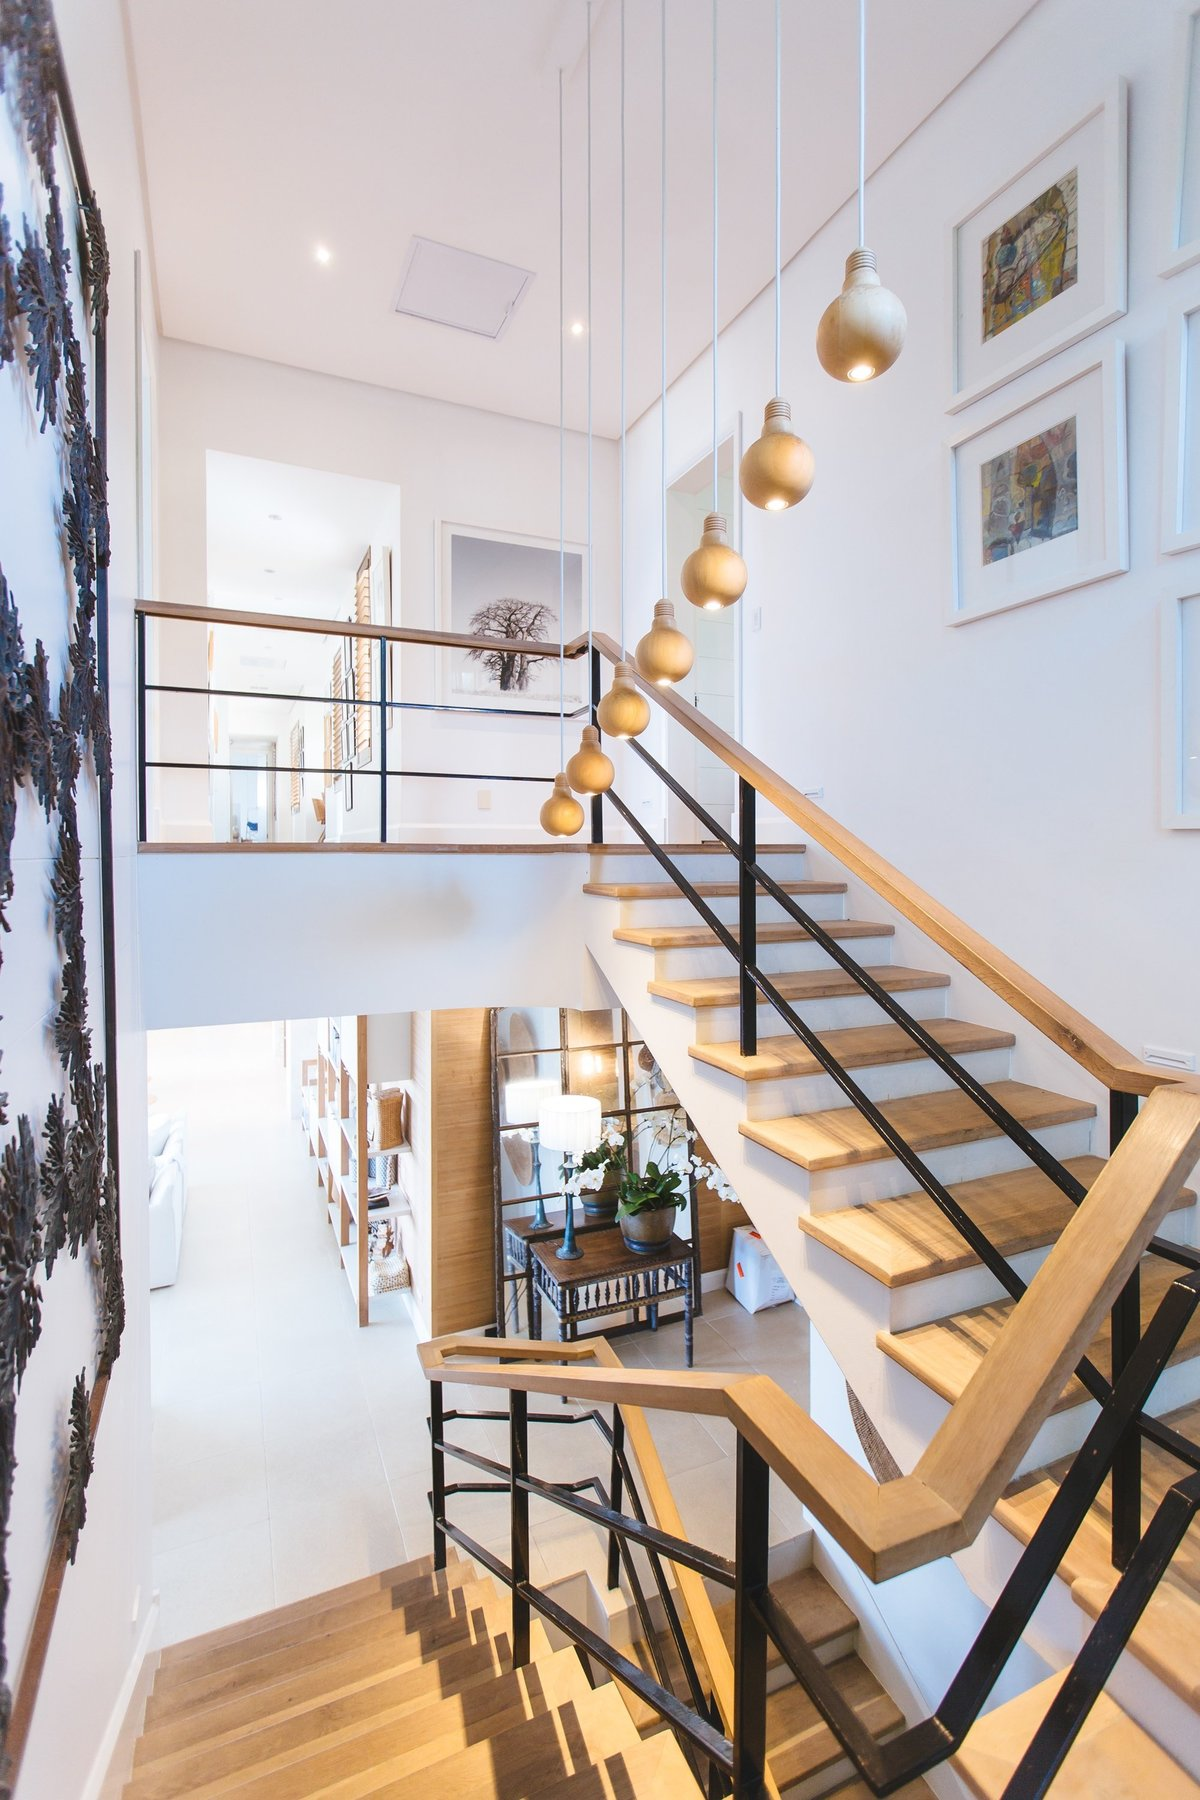 Modern staircase design home for sale Portland Oregon